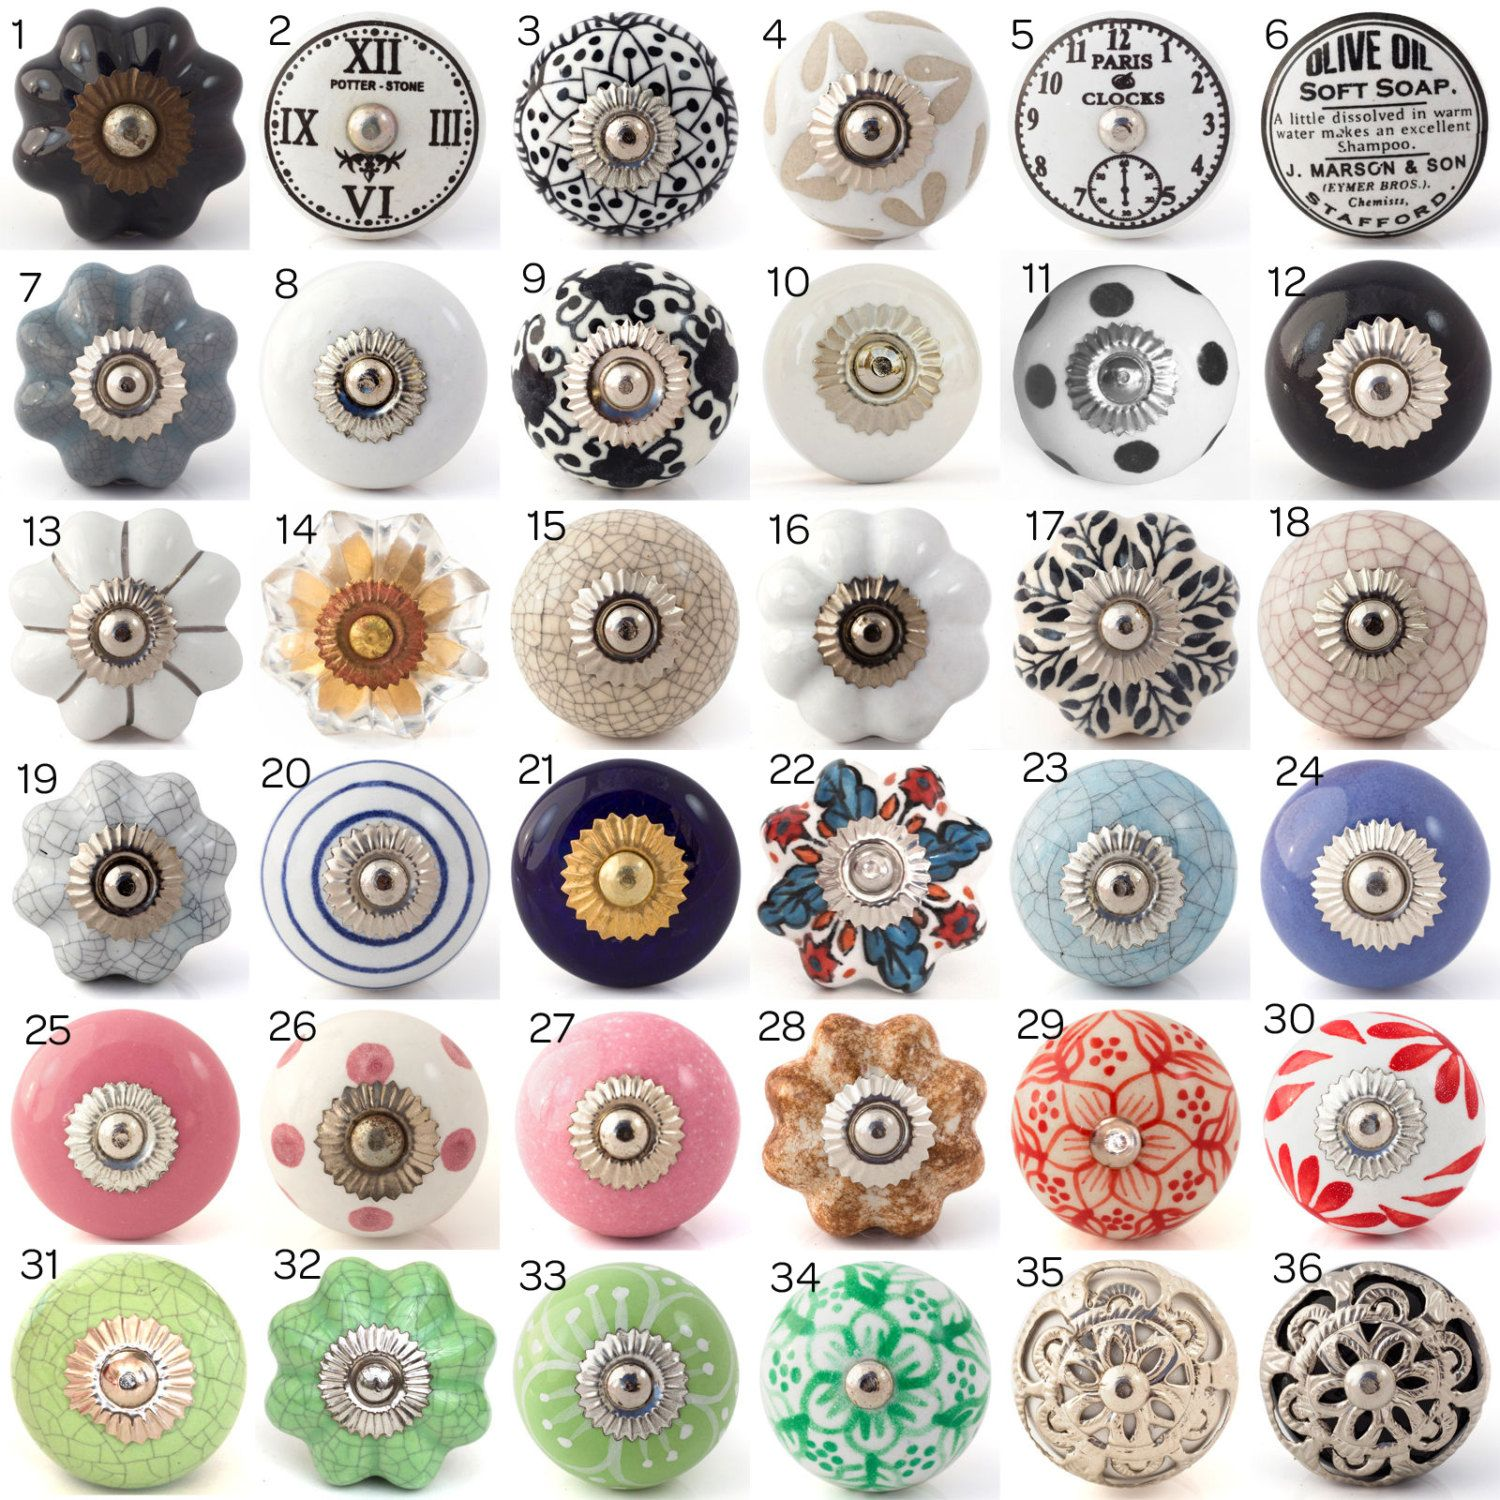 Ceramic Porcelain Door Knobs Various Multi Coloured Designs Kitchen ...